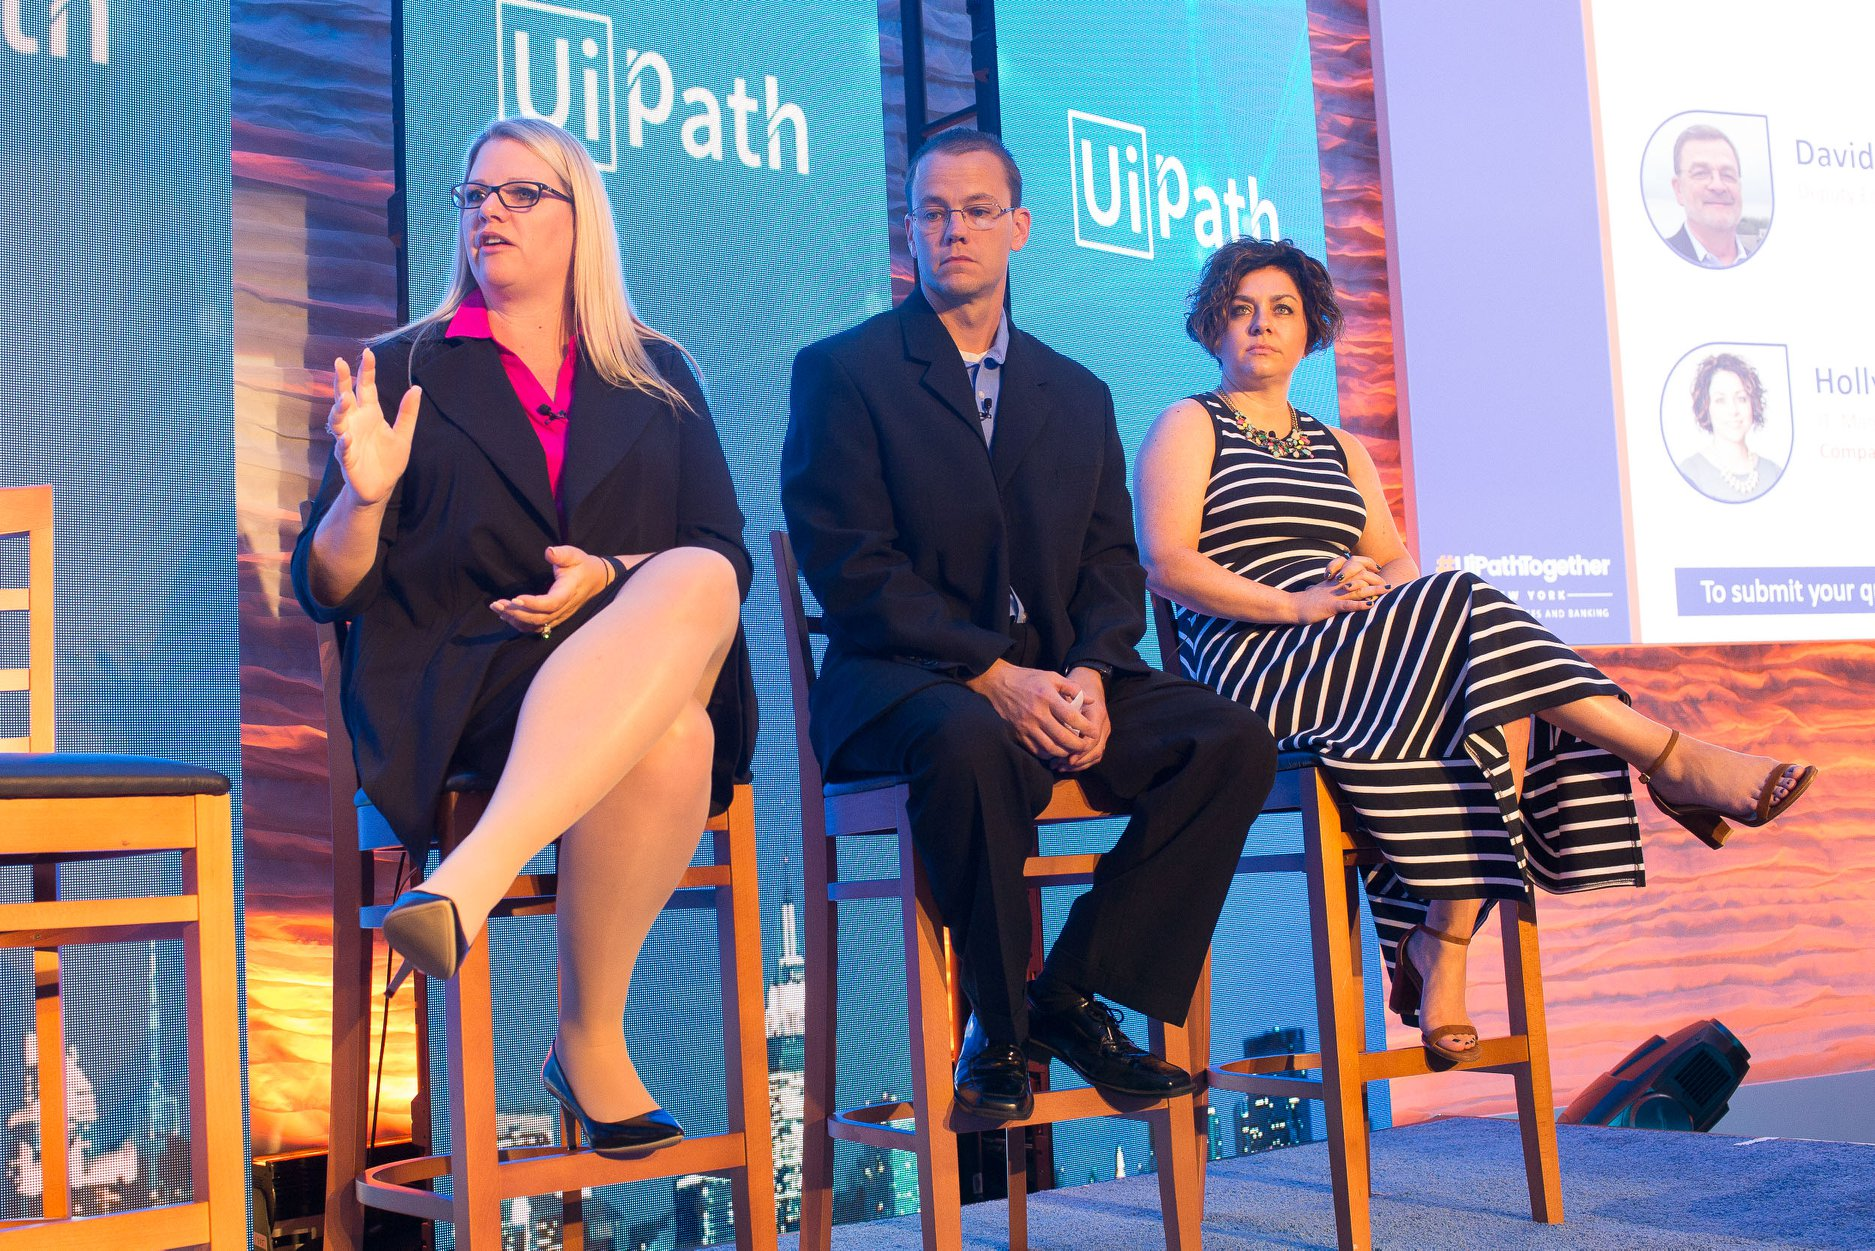 uipath-together-new-york-7